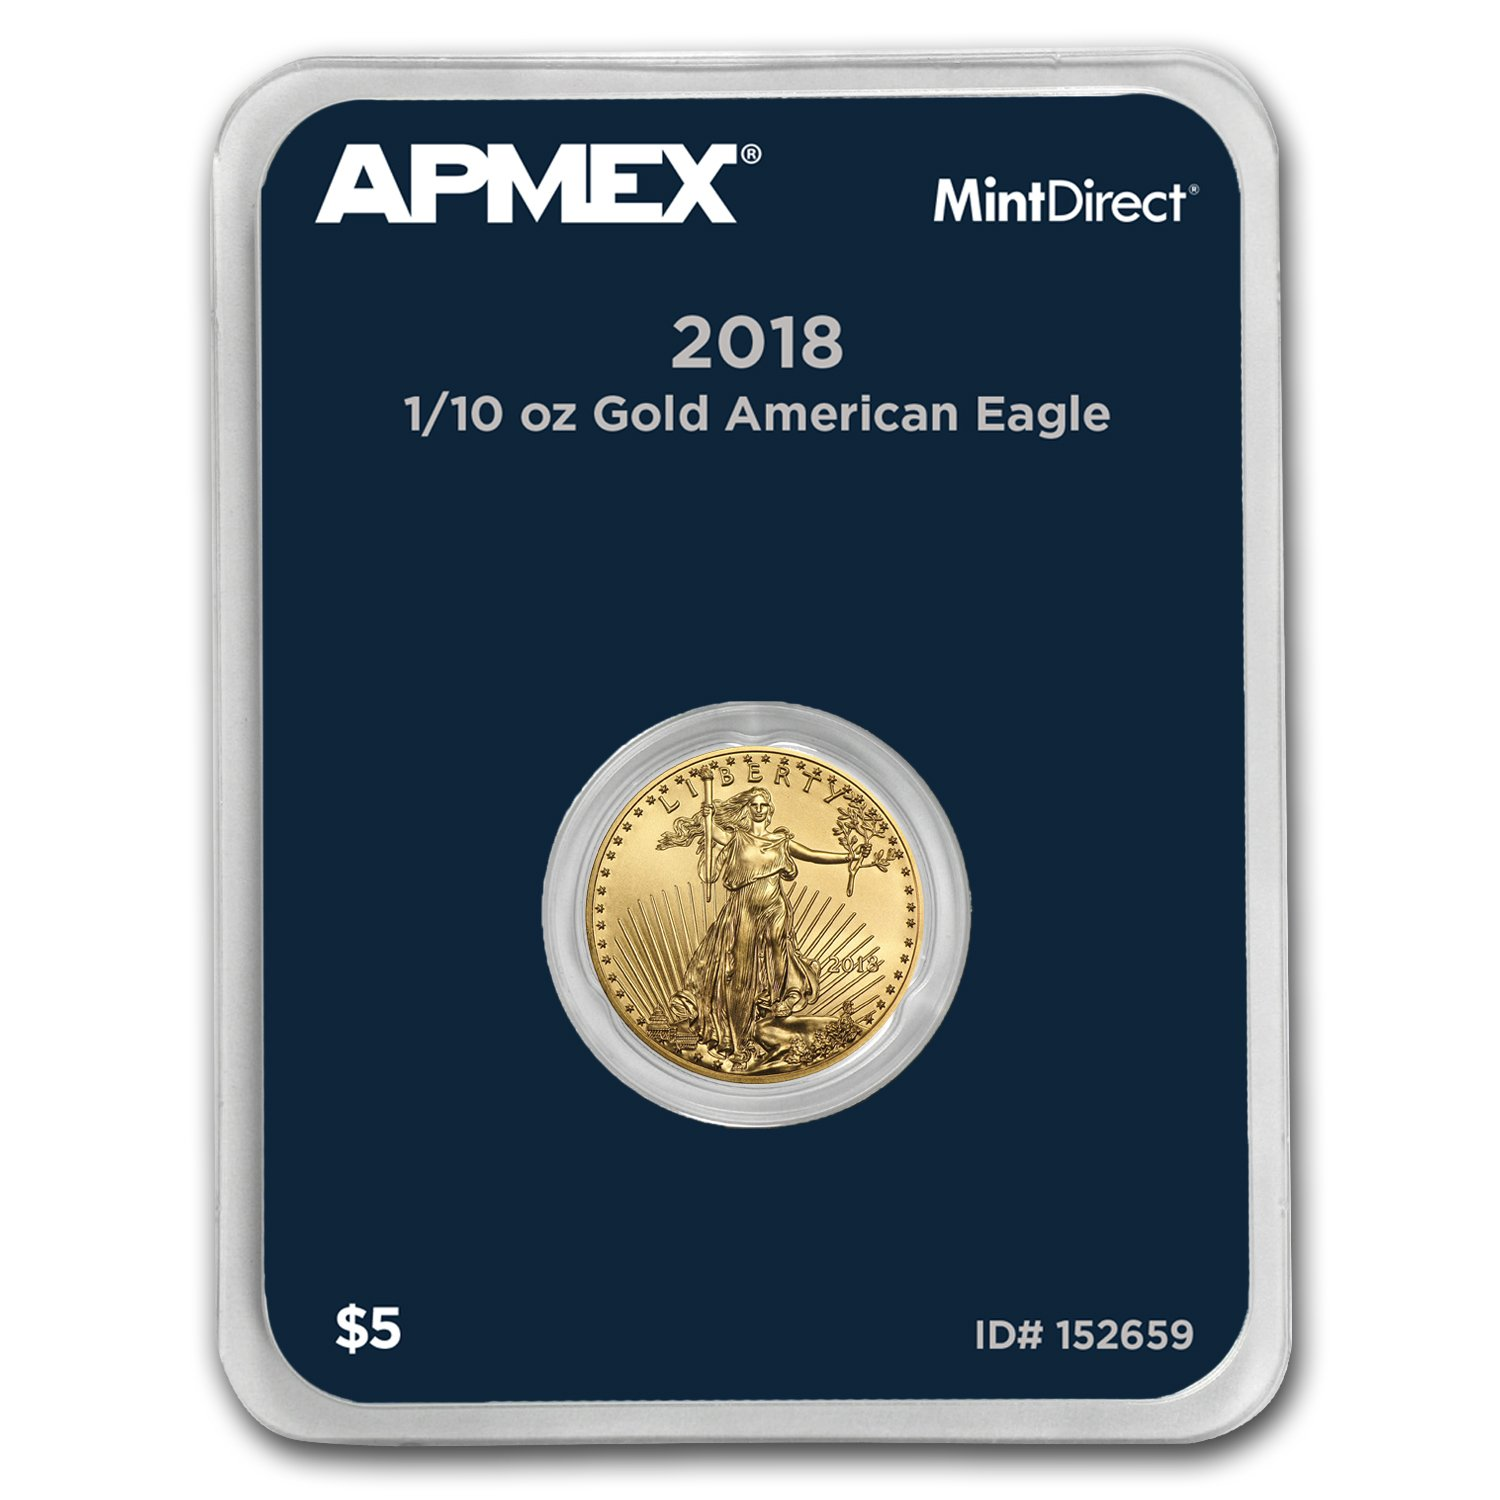 2018 1/10 oz Gold American Eagle (MintDirect Single) Gold Brilliant Uncirculated